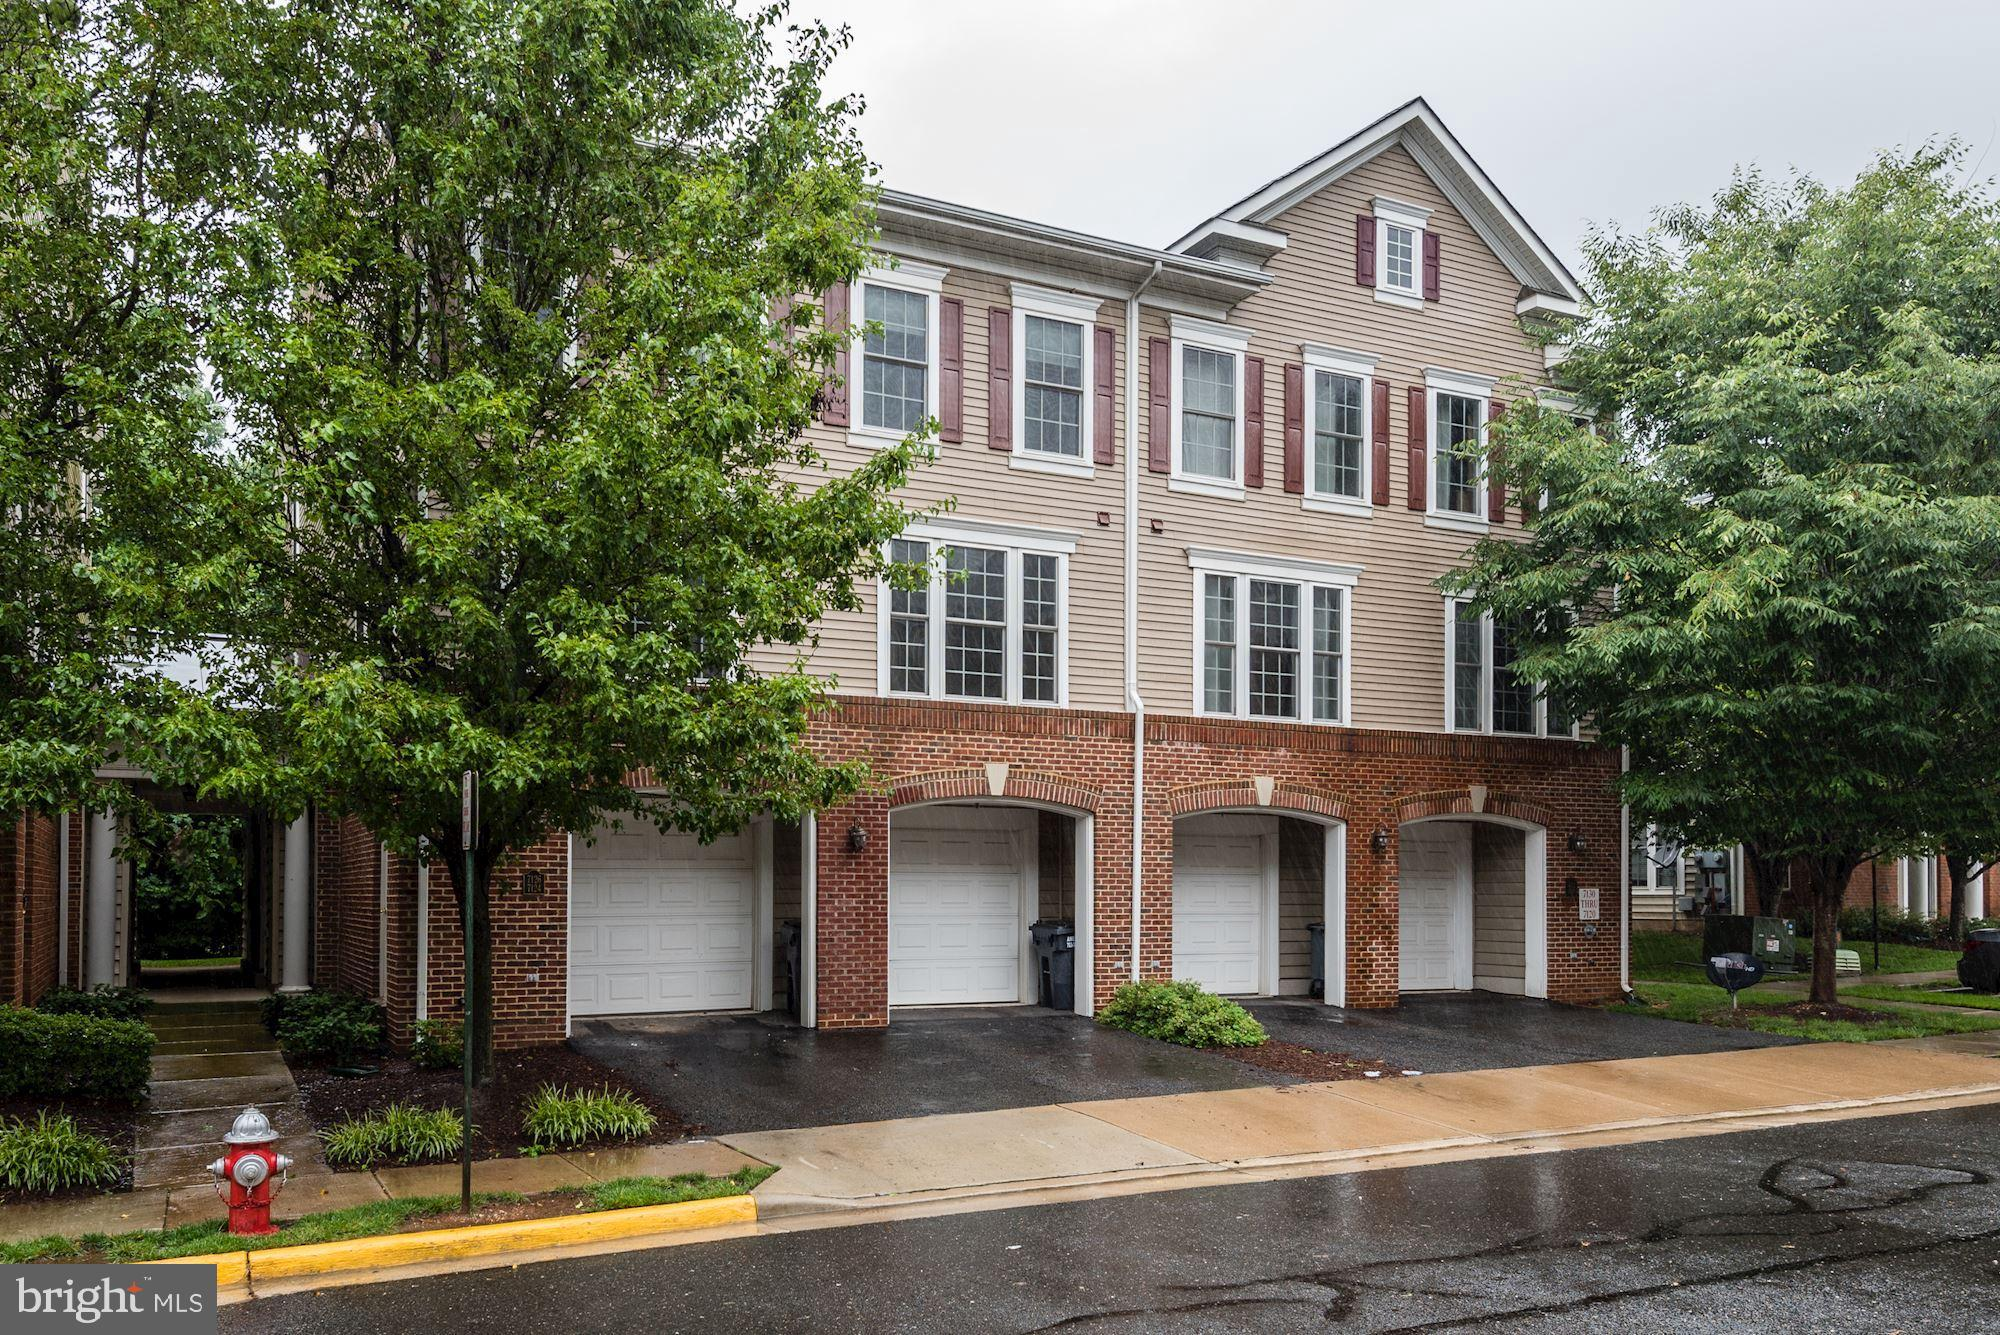 Don't miss this lovely townhouse. Freshly painted. Featuring hardwood floor throughout main level. 9ft ceilings. Granite countertops with stainless steel appliances. 1 car garage. Huge master suite with walk-in closet. Commuter's dream conveniently located near Route 1, 495, Old Town Alexandria, and National Harbor.